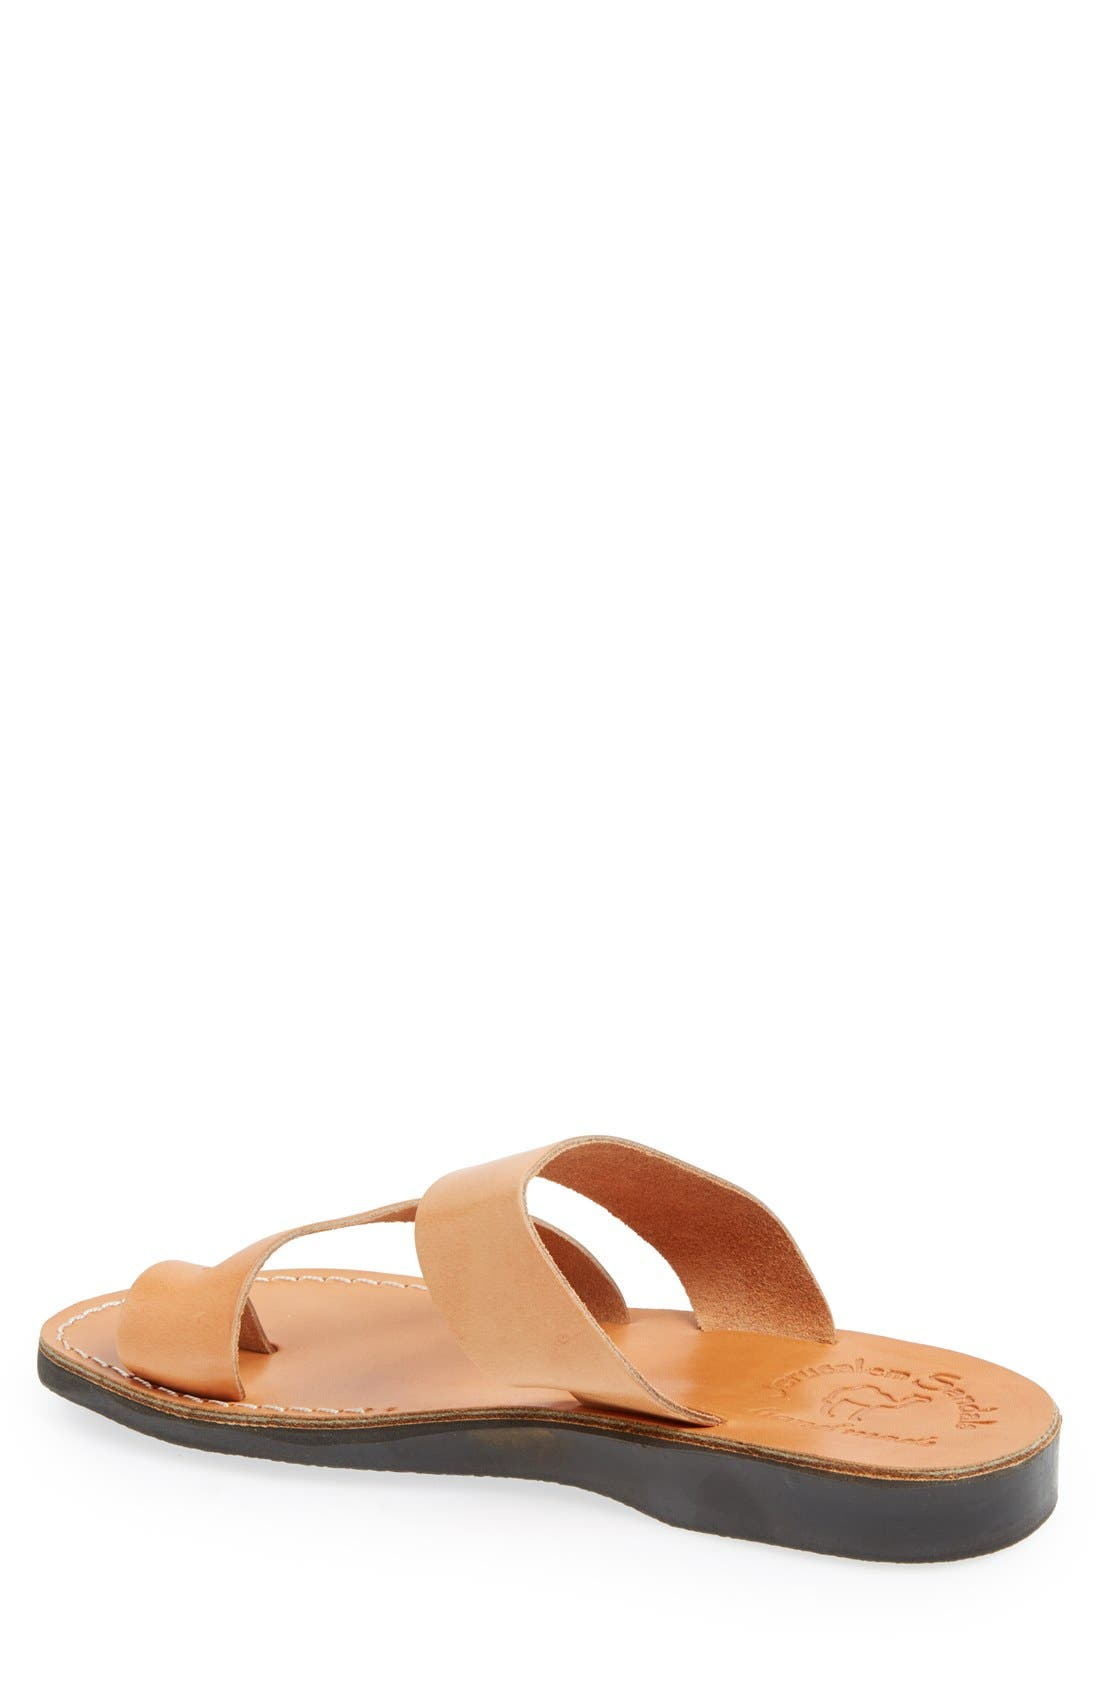 'Zohar' Leather Sandal,                             Alternate thumbnail 2, color,                             201